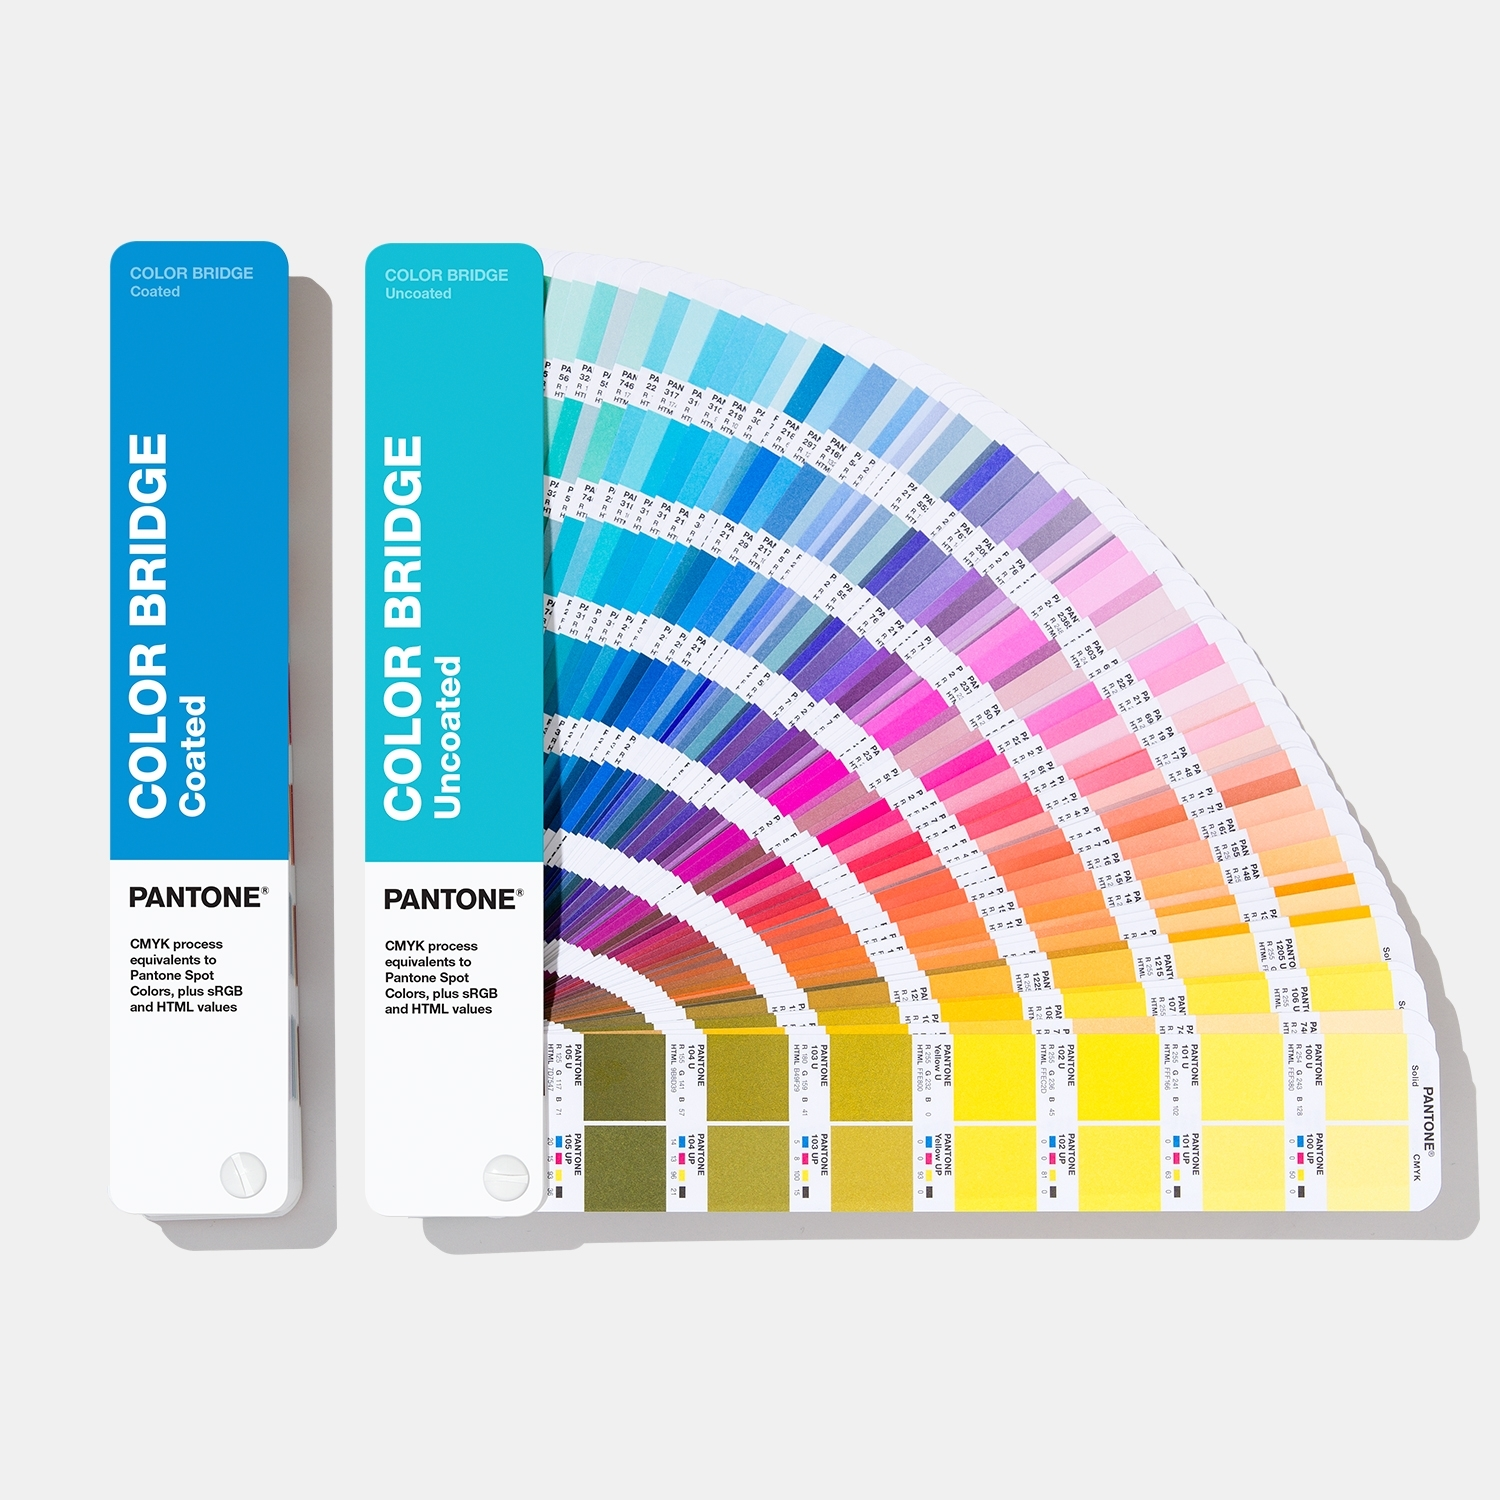 Color Bridge Guide Set | Coated & Uncoated Translate Pantone Colors into CMYK, HTML, RGB